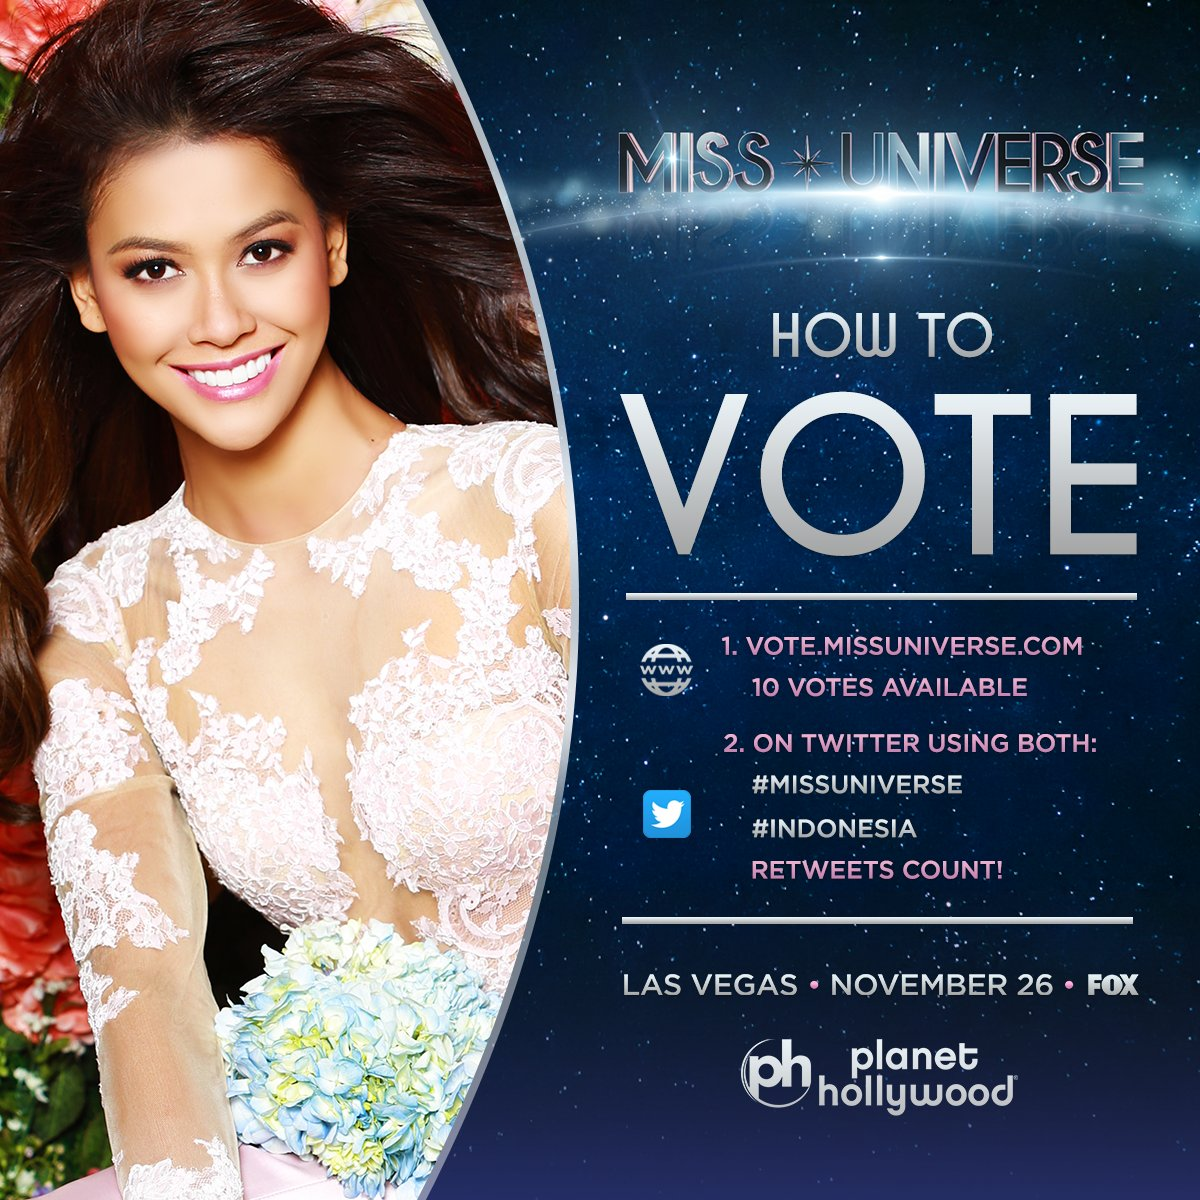 Voting for #MissUniverse is officially OPEN. RT to vote for Miss Universe #Indonesia!   Watch her LIVE: Sunday Nov. 26 at 7PM on @FOXTV.